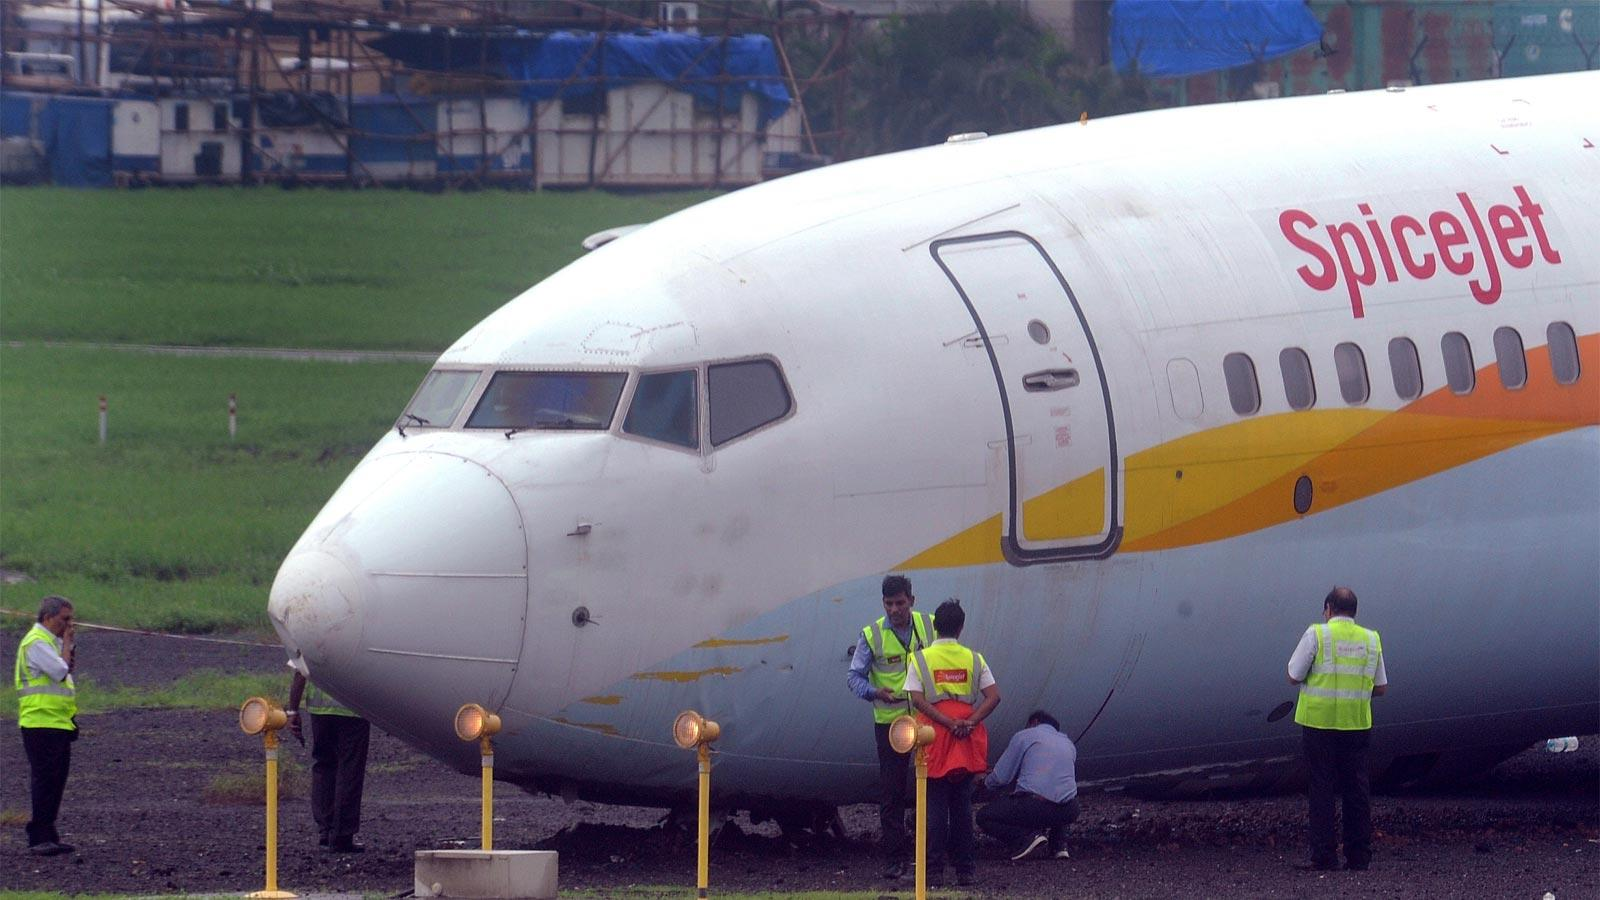 spicejet-pilots-licences-suspended-by-dgca-for-violations